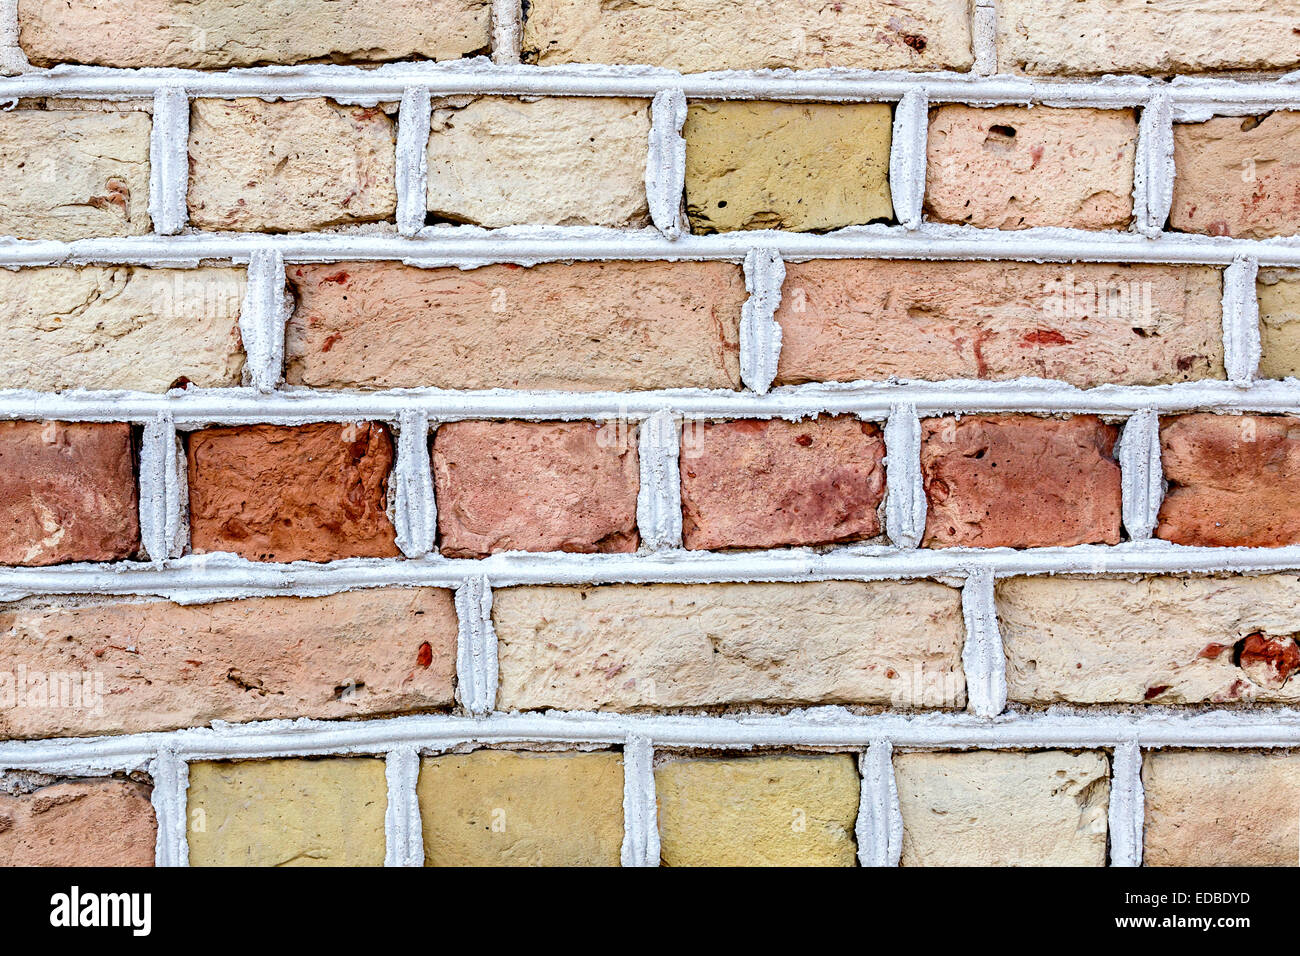 Brick wall, Riga, Latvia - Stock Image